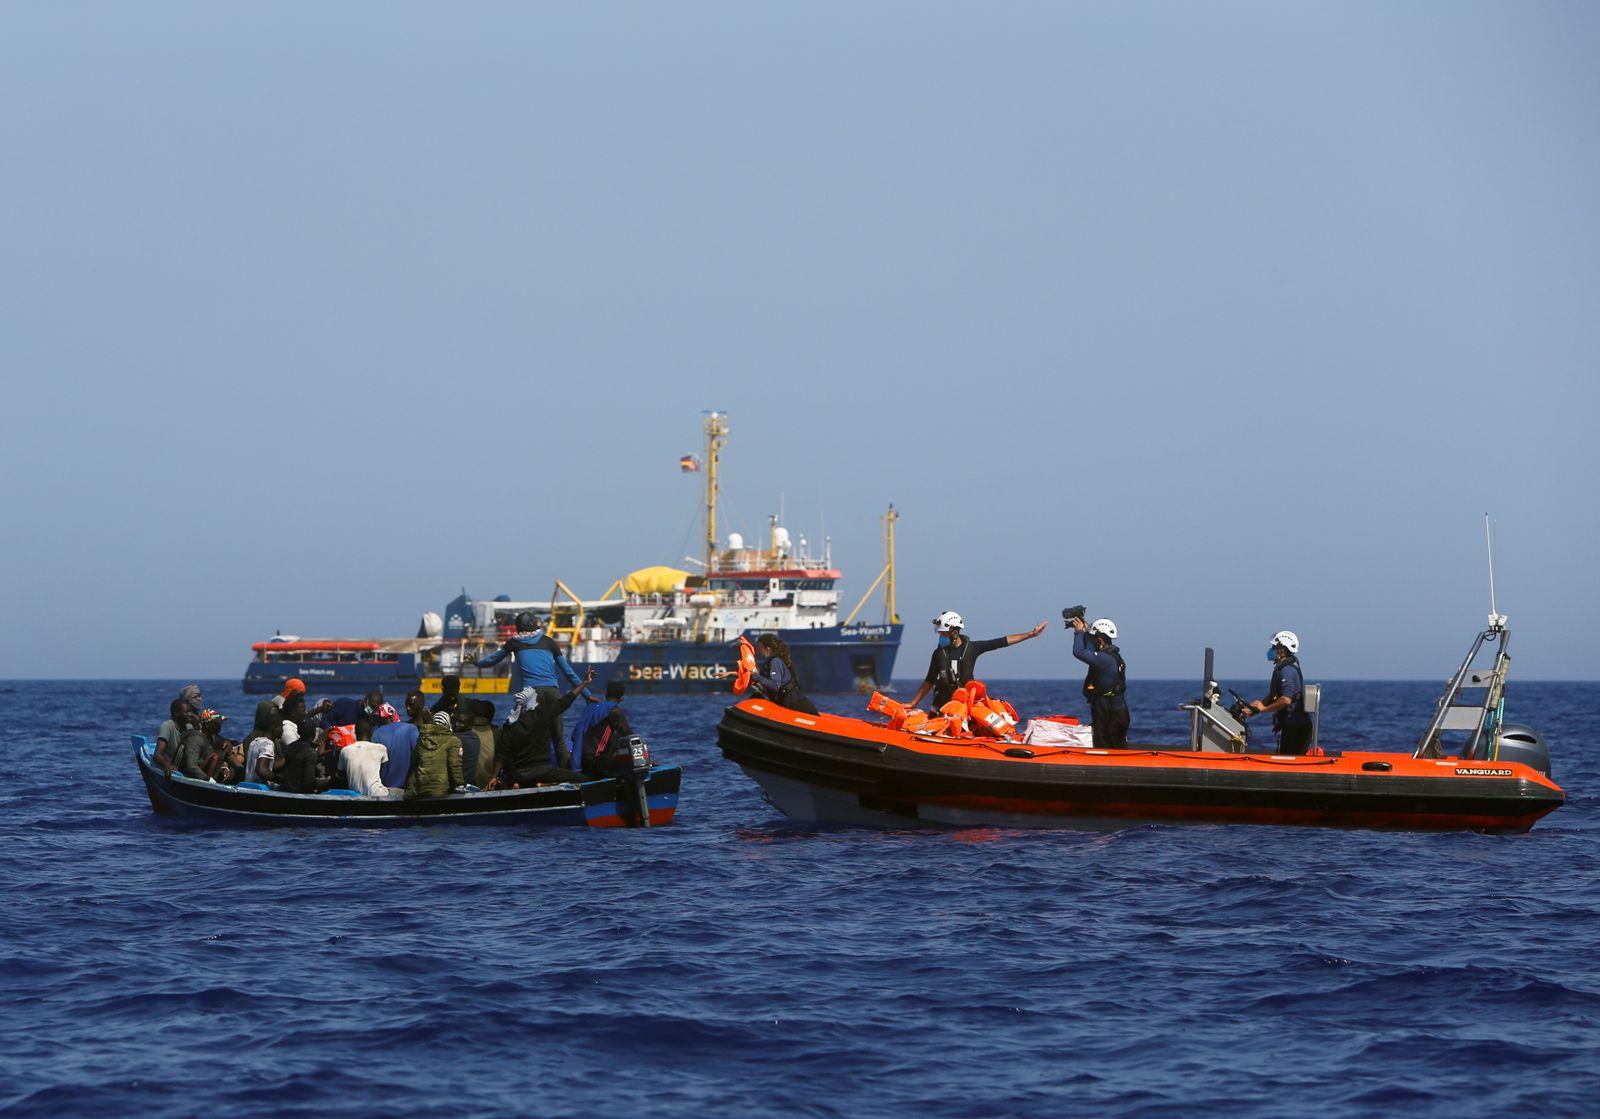 NGO ship Sea-Watch 3 rescues migrants in the Mediterranean